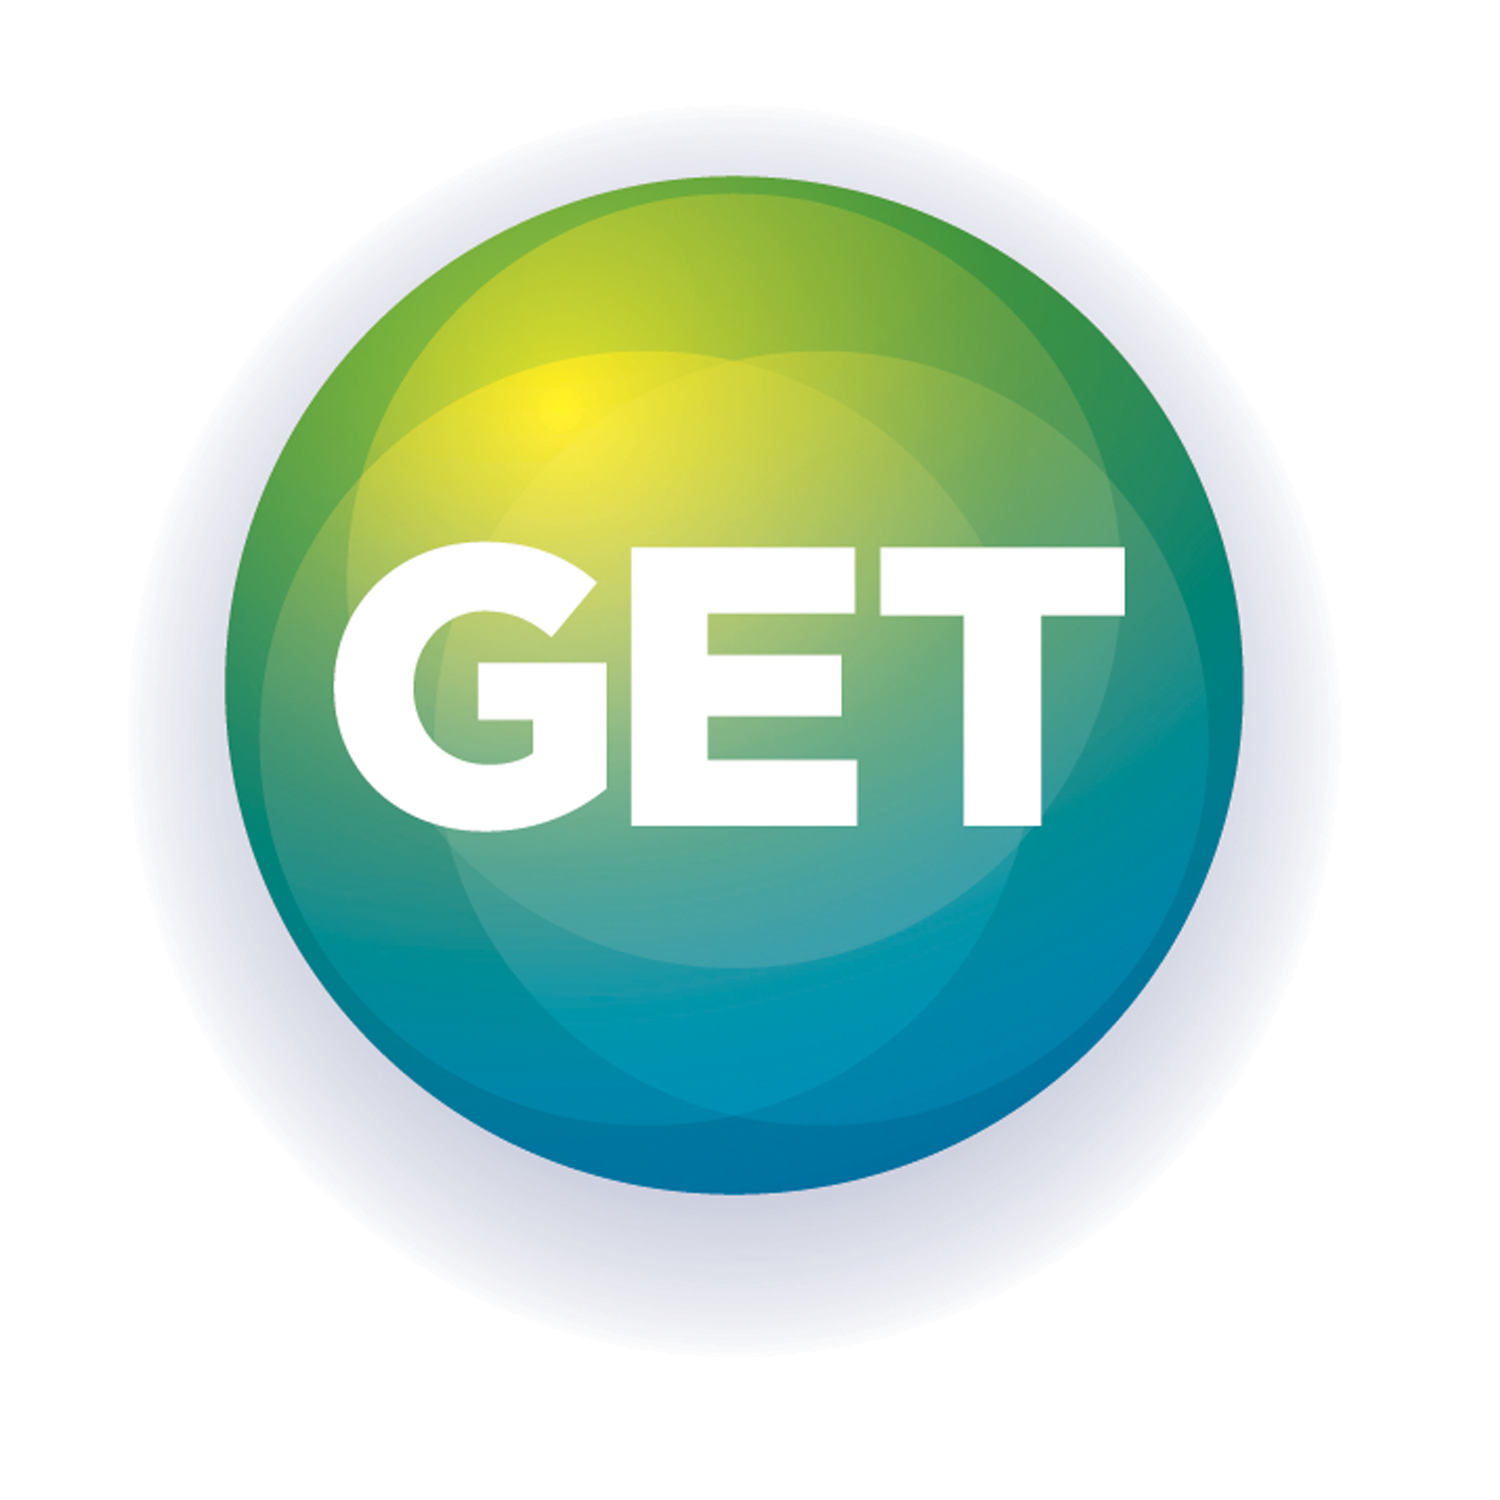 G-E-T text logo surrounded by a blue and green circle.